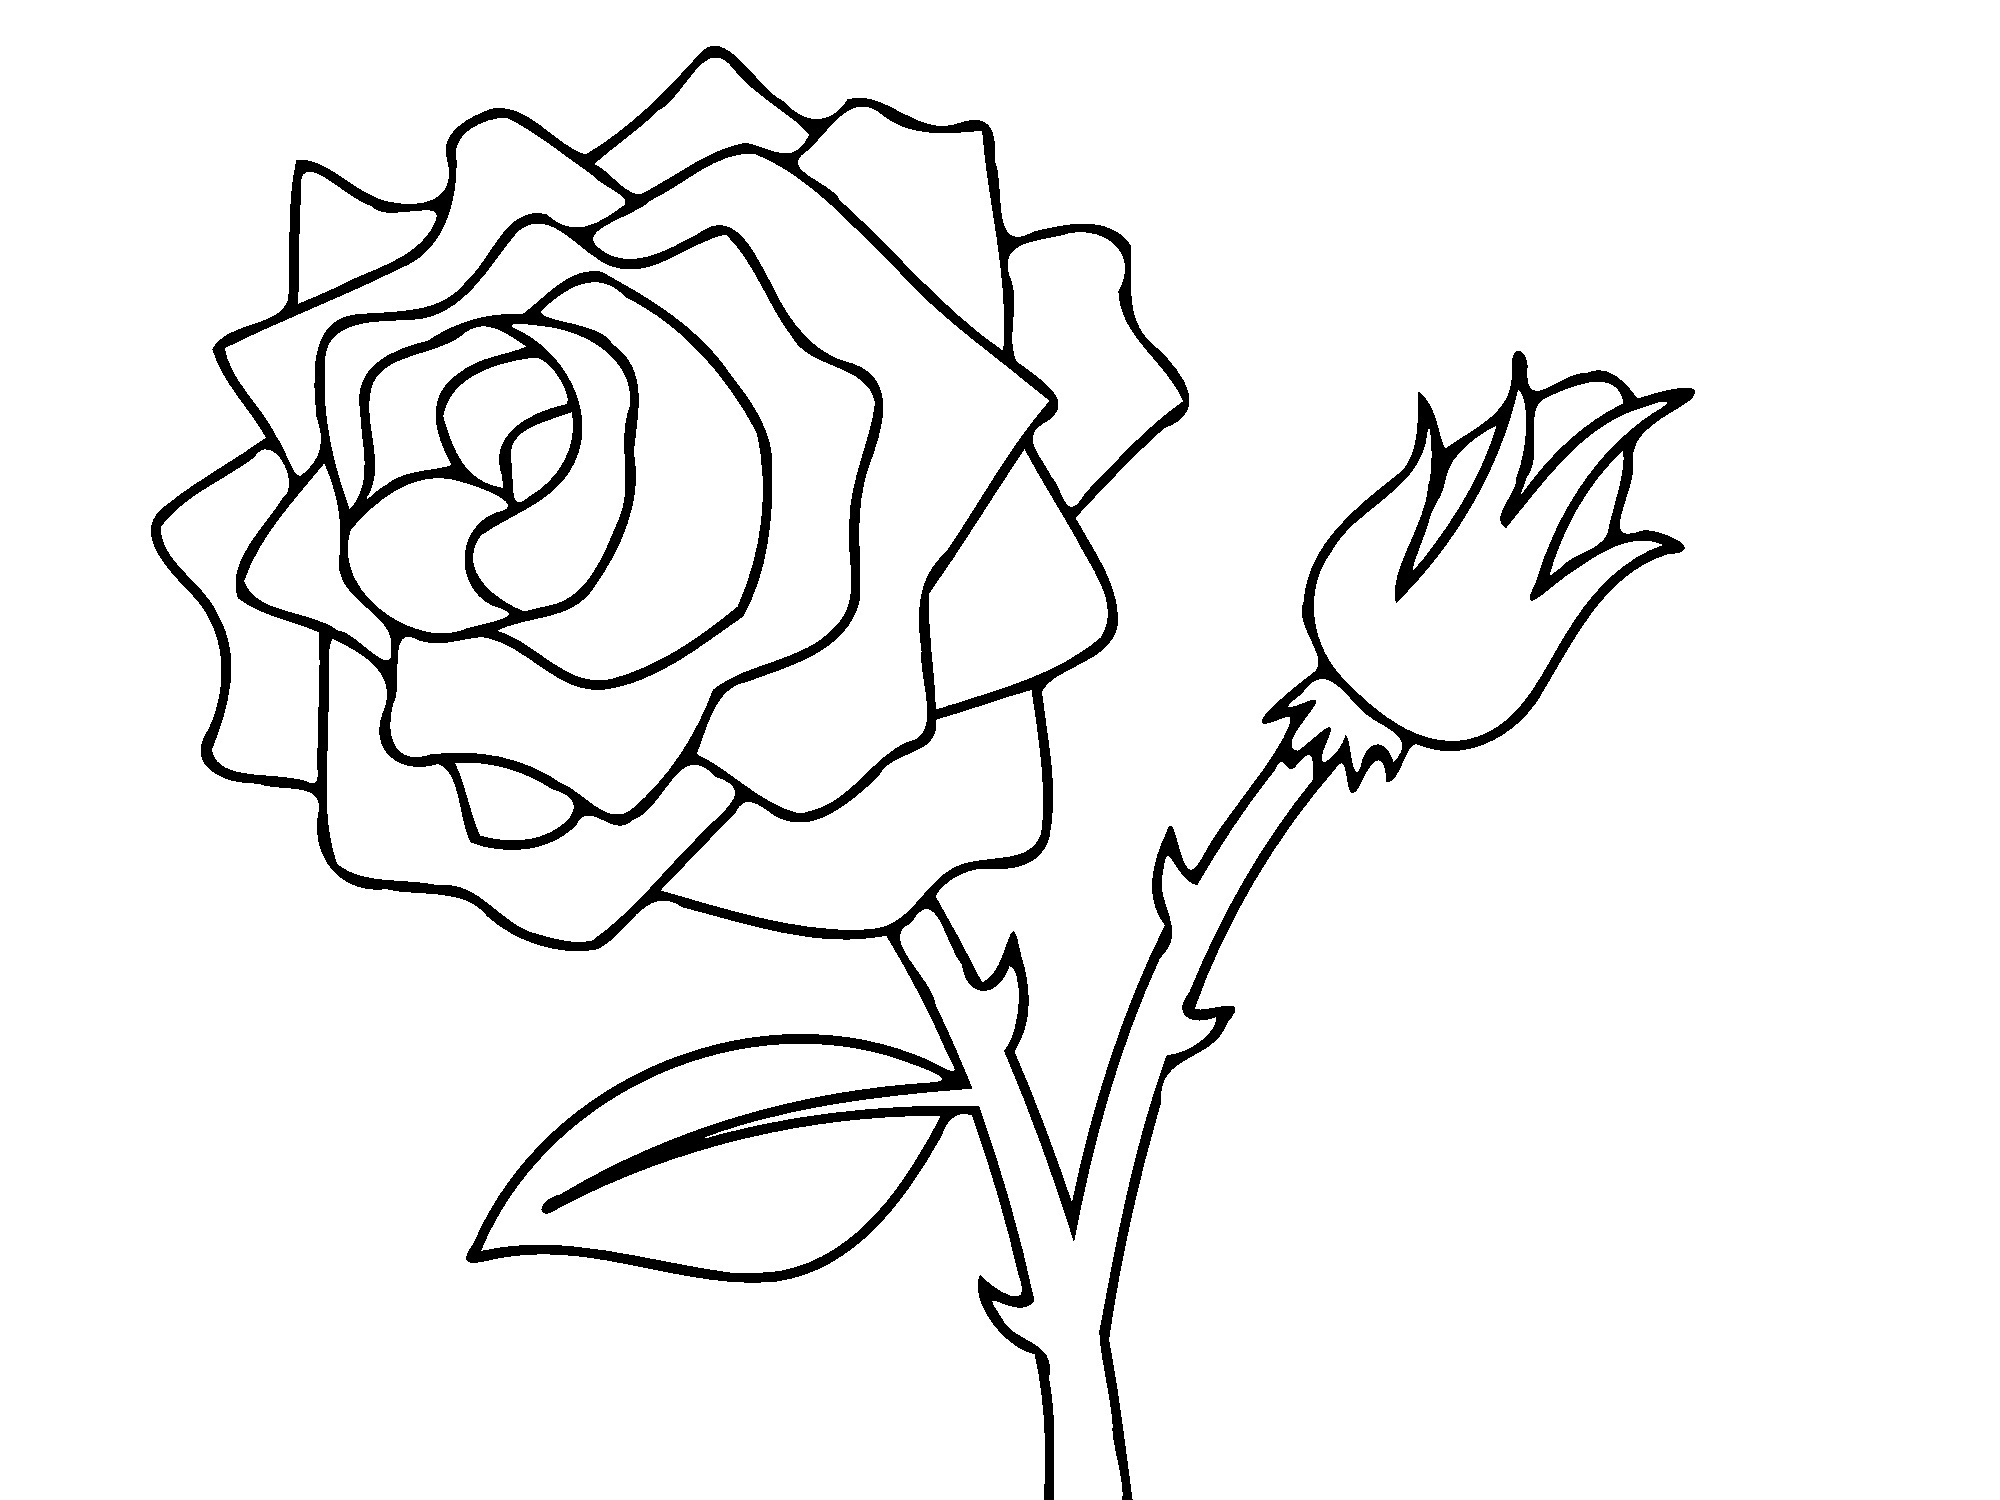 2000x1500 Rose Flower Drawings. Best Rose Flower Drawing Vector With Rose